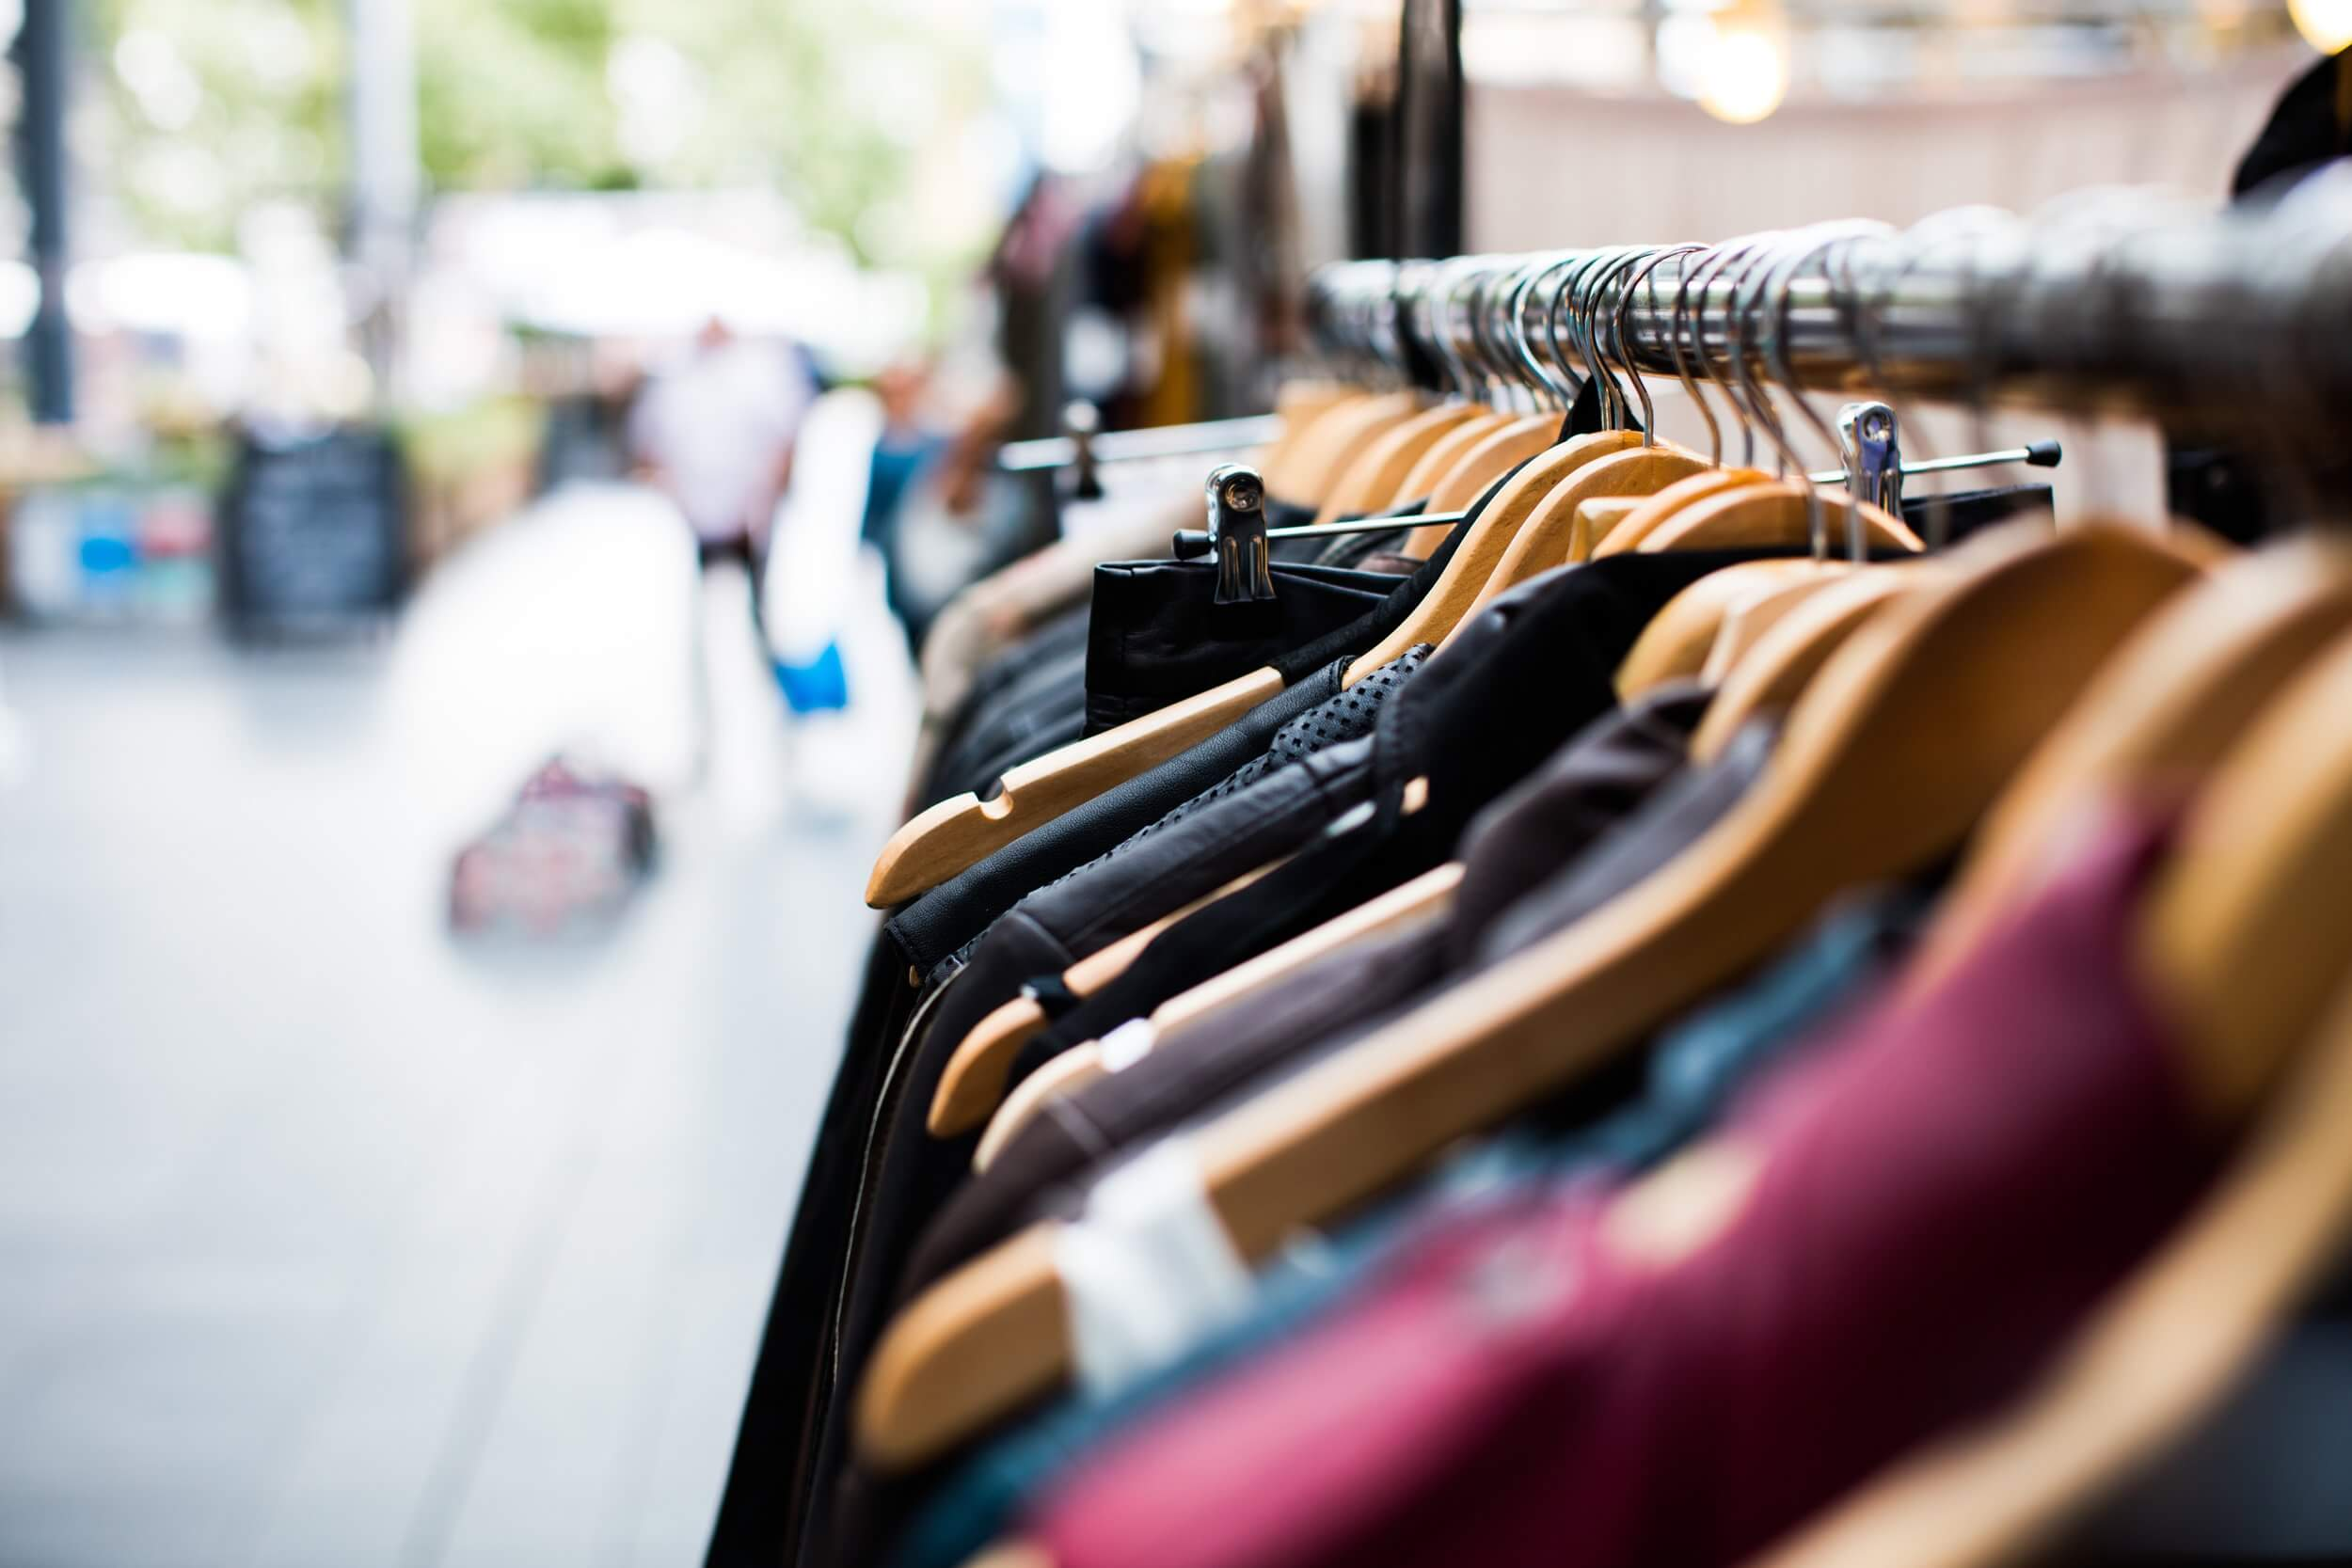 A two staged forecasting scheme considering the constraints of sales forecasting in the fashion industry